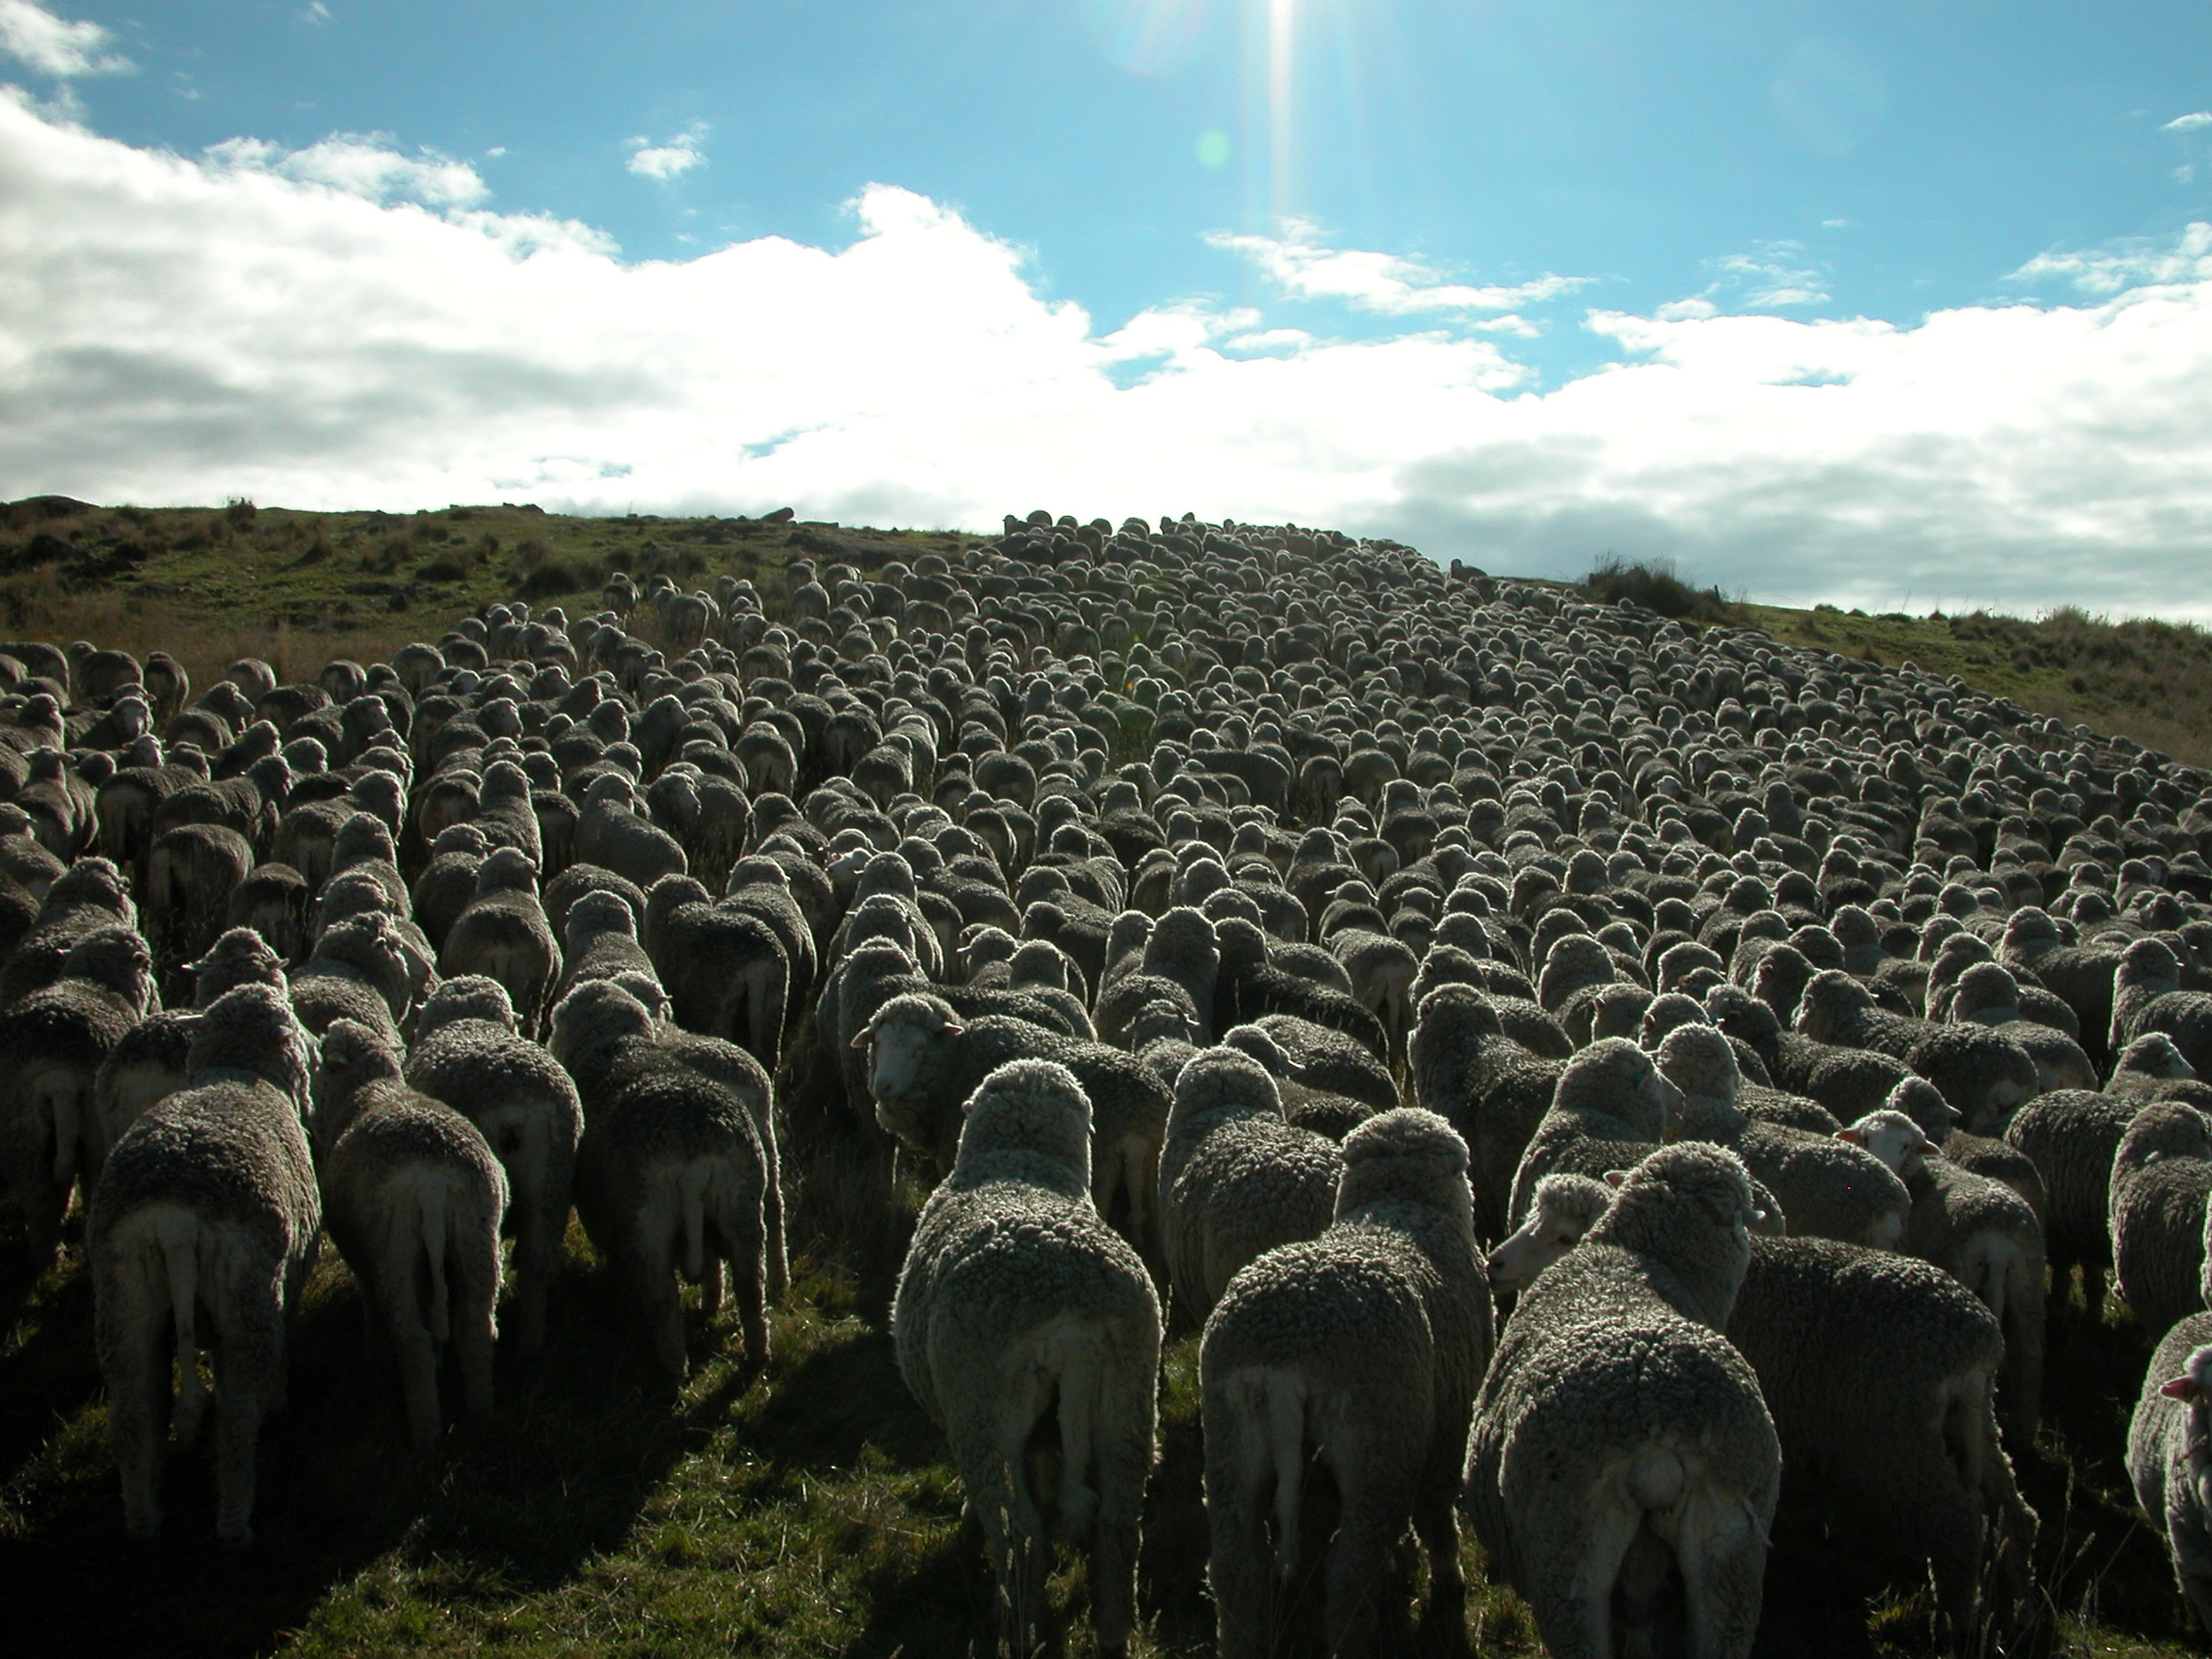 Heading up the hill to the gate, after the lamb rescue. It does look like a thousand sheep when they are in a mob, doesn't it?